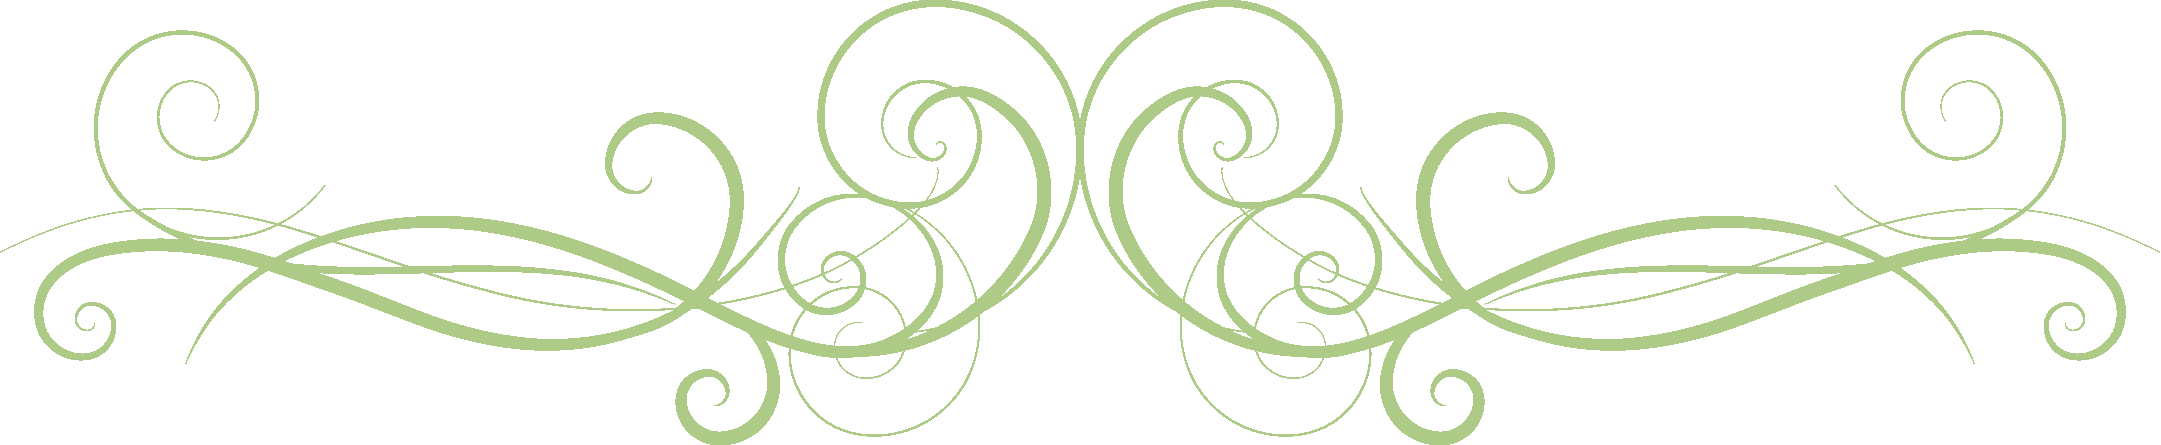 Vector swirl png. Swirls transparent pictures free